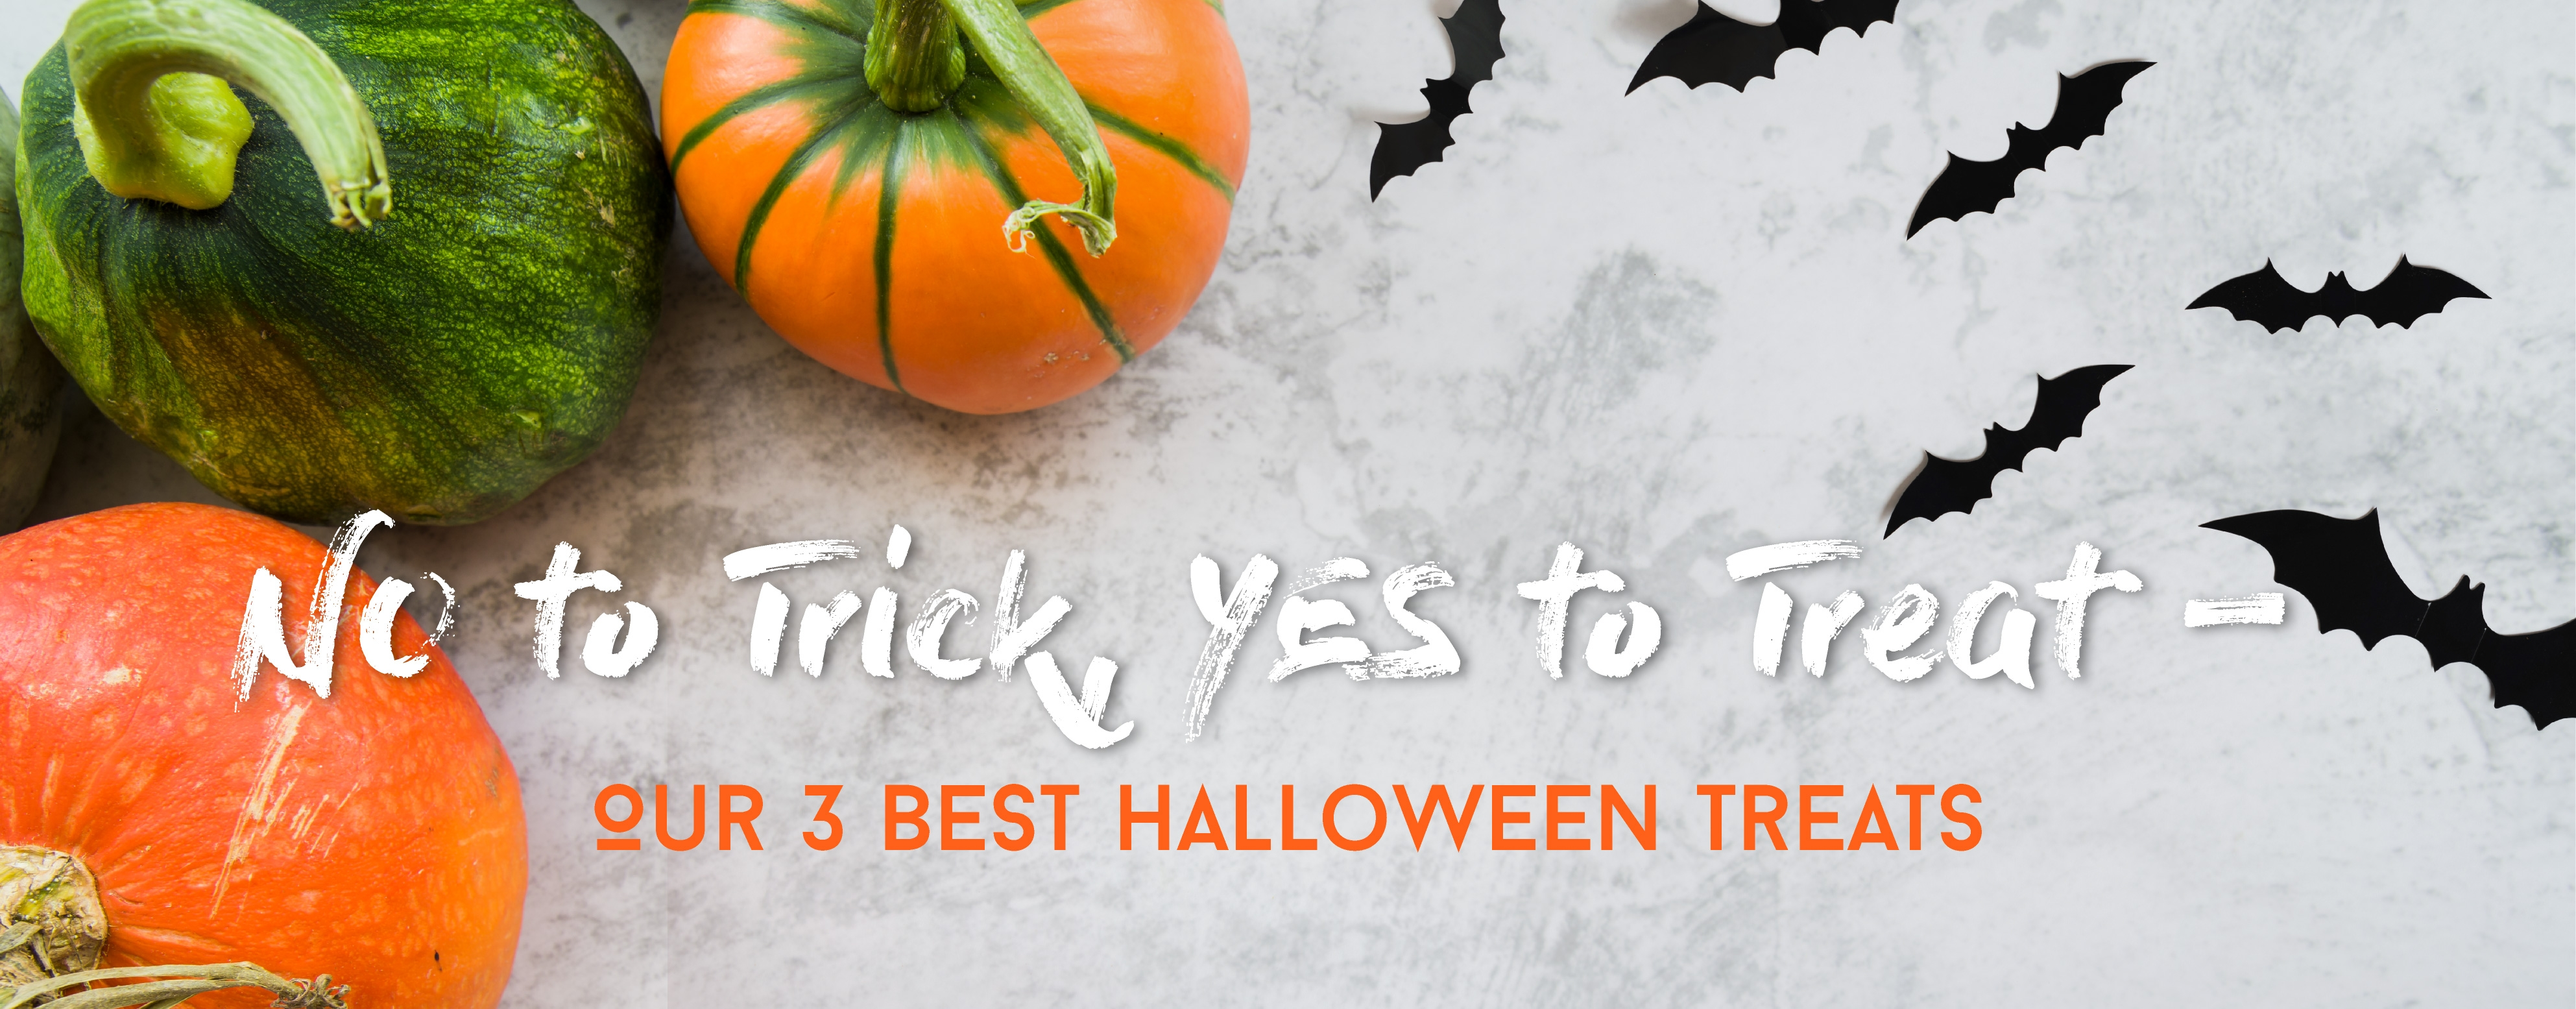 HNO to Trick, YES to Treat – Top 3 Halloween treats